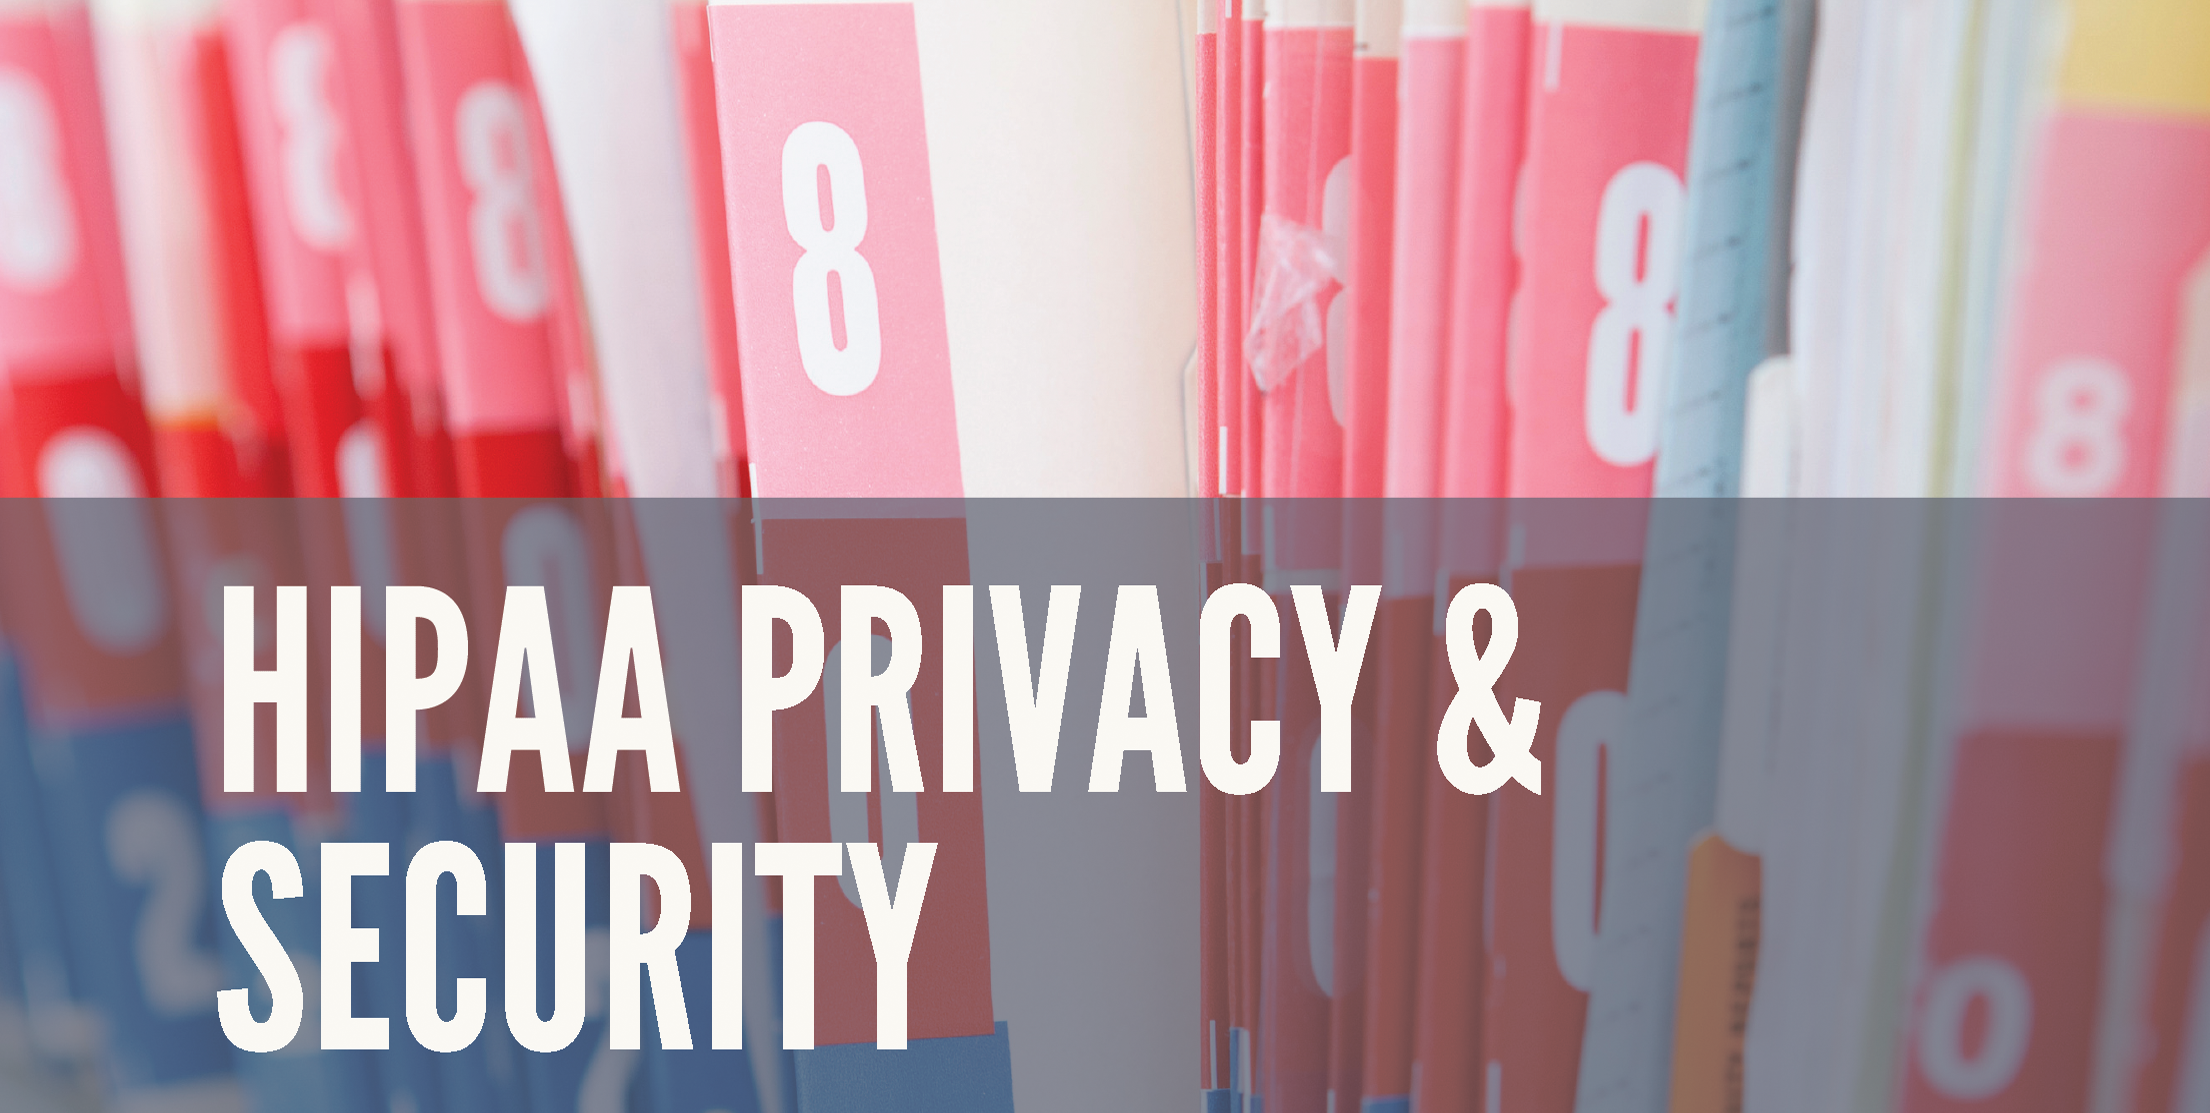 HIPAA Privacy & Security - Health care providers are subject to numerous state and federal laws addressing the use and disclosure of an individual's health information. This course is designed to cover every aspect of HIPAA and equip employees with the knowledge to conform to its required standards. This course is taught in two parts.Part 1: HIPAA Privacy Rule. The following will be discussed during this portion of the course: Introduction to HIPAA, Important Definitions associated with the HIPAA Privacy Rule, Information Covered by the Privacy Rule, How to Handle Requests for PHI, Appropriate Use and Disclosure under the Privacy Rule, Patient Rights under the Privacy Rule, and Privacy Practices and Breaches of Confidentiality Part 2: HIPAA Security Rule. The following will be discussed during this portion of the course: Introduction to the HIPAA Security Rule, Why Do We Need the Security Rule?, Who Does the Security Rule Apply To?, How Does an Organization Comply with the Security Rule?, and How Does an Employee Comply with the Security Rule?Course Duration: 8 hours